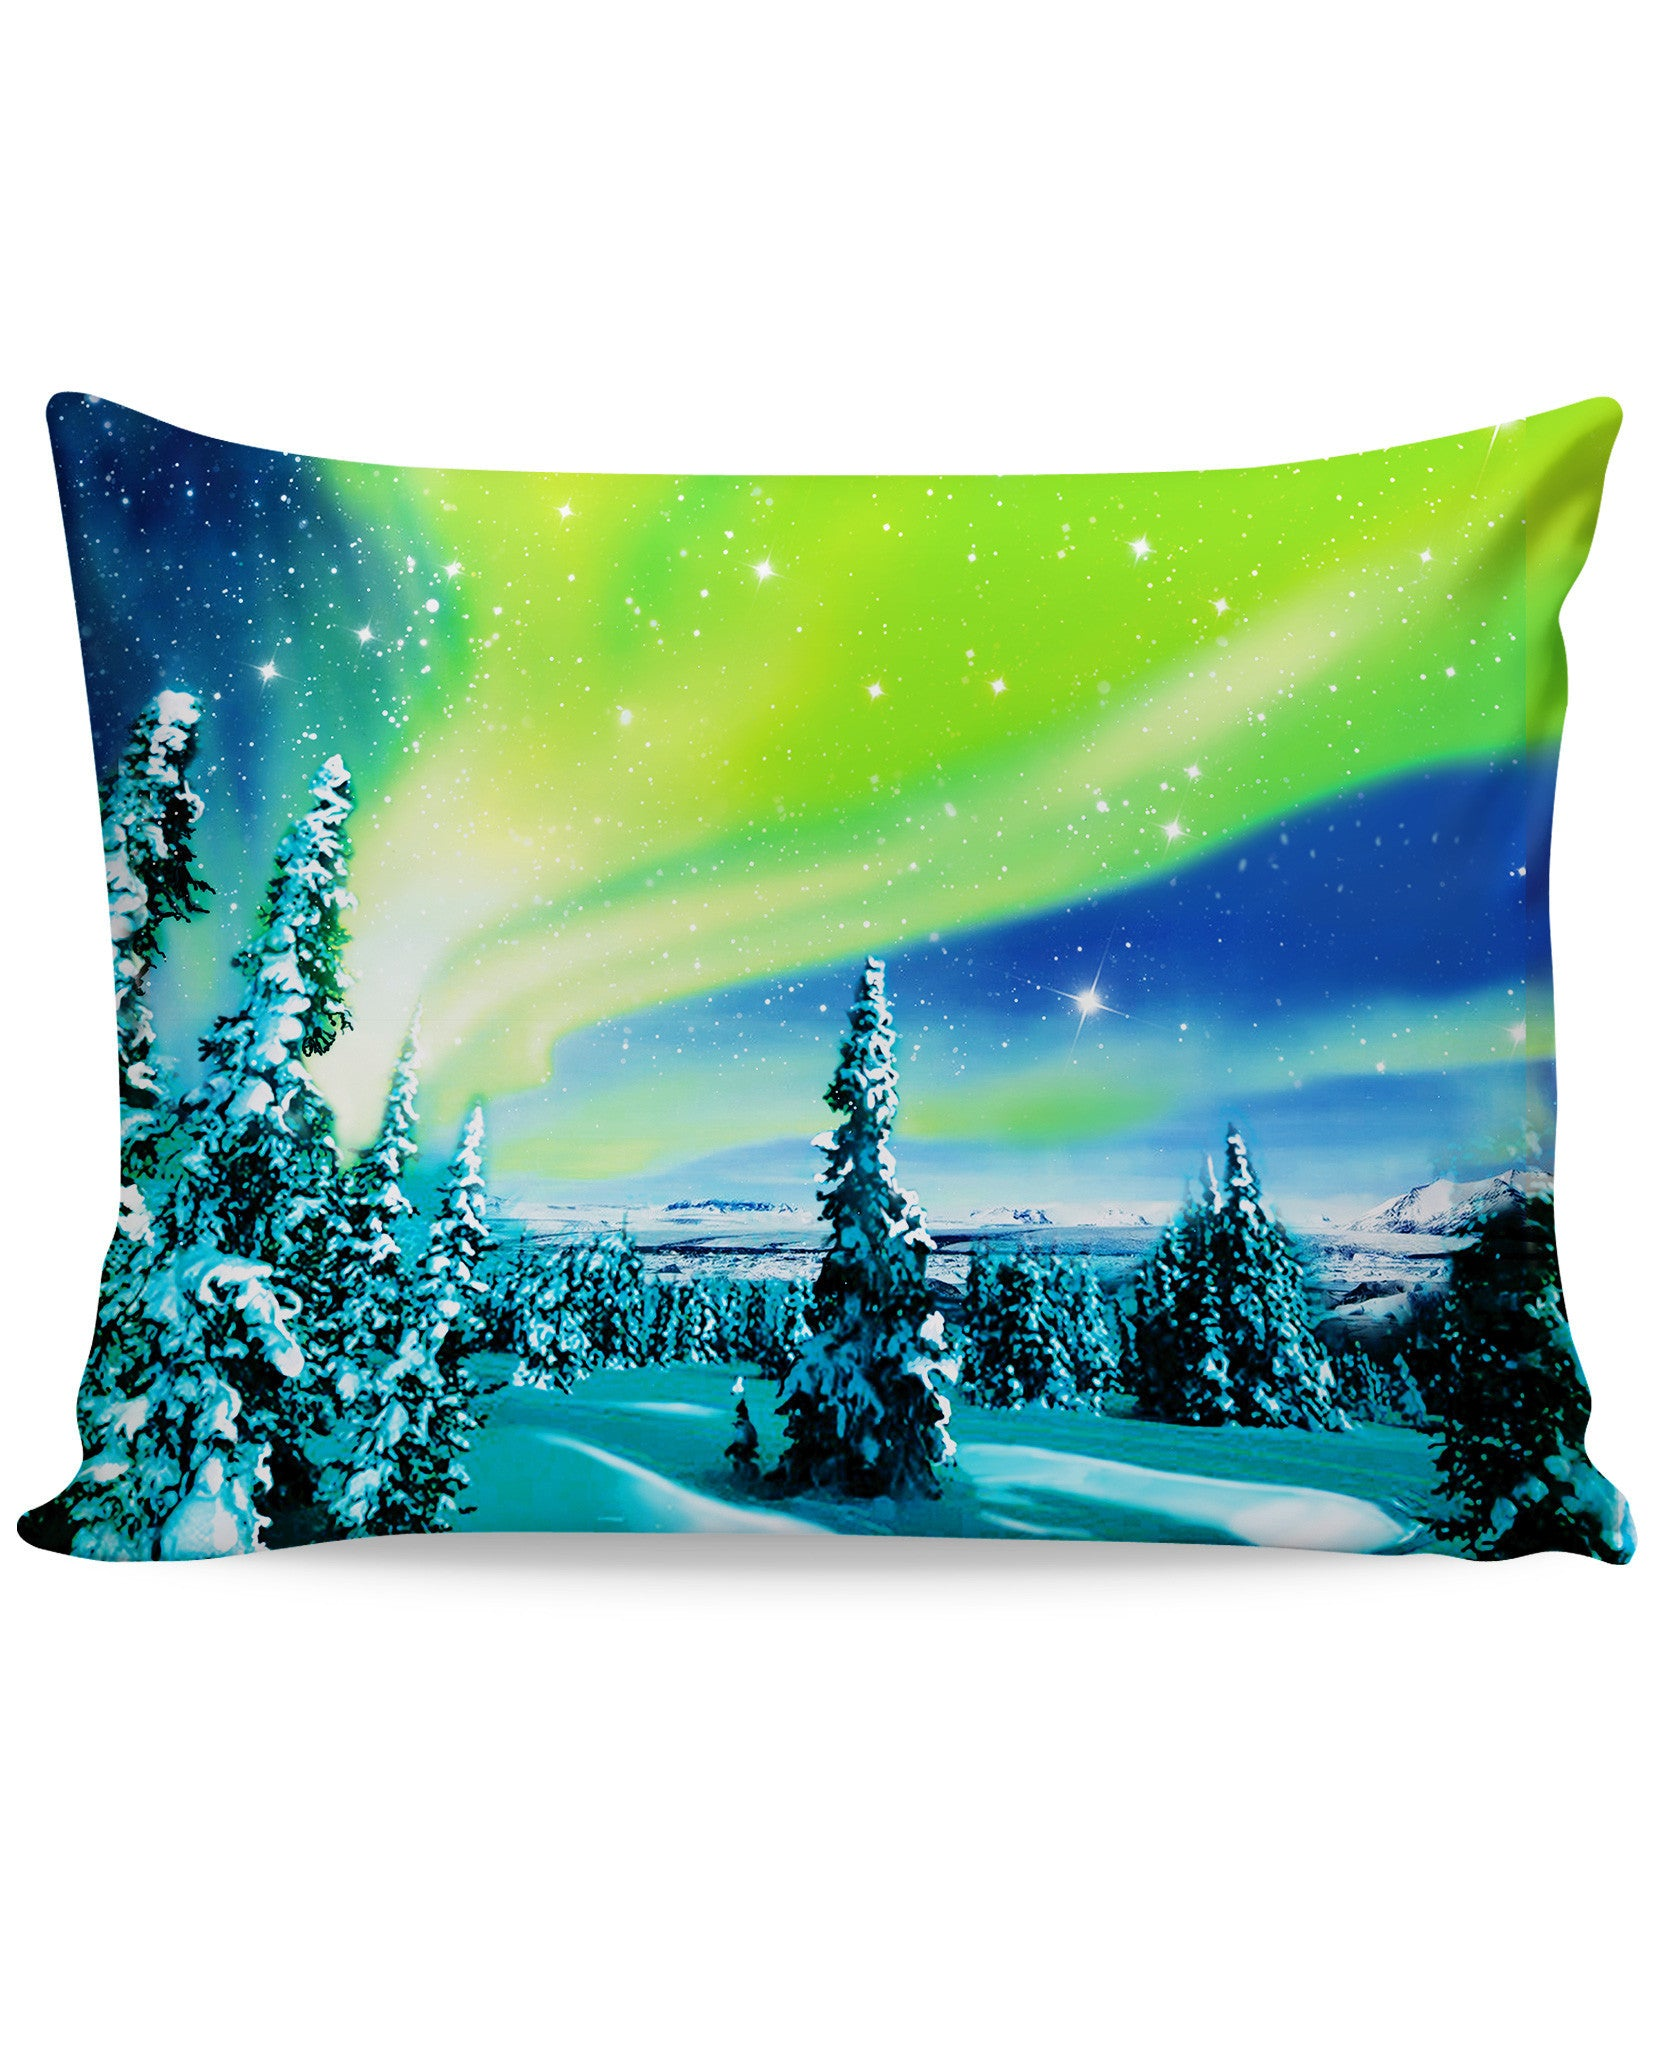 Arctic Nights Pillow Case - TShirtsRUS.co